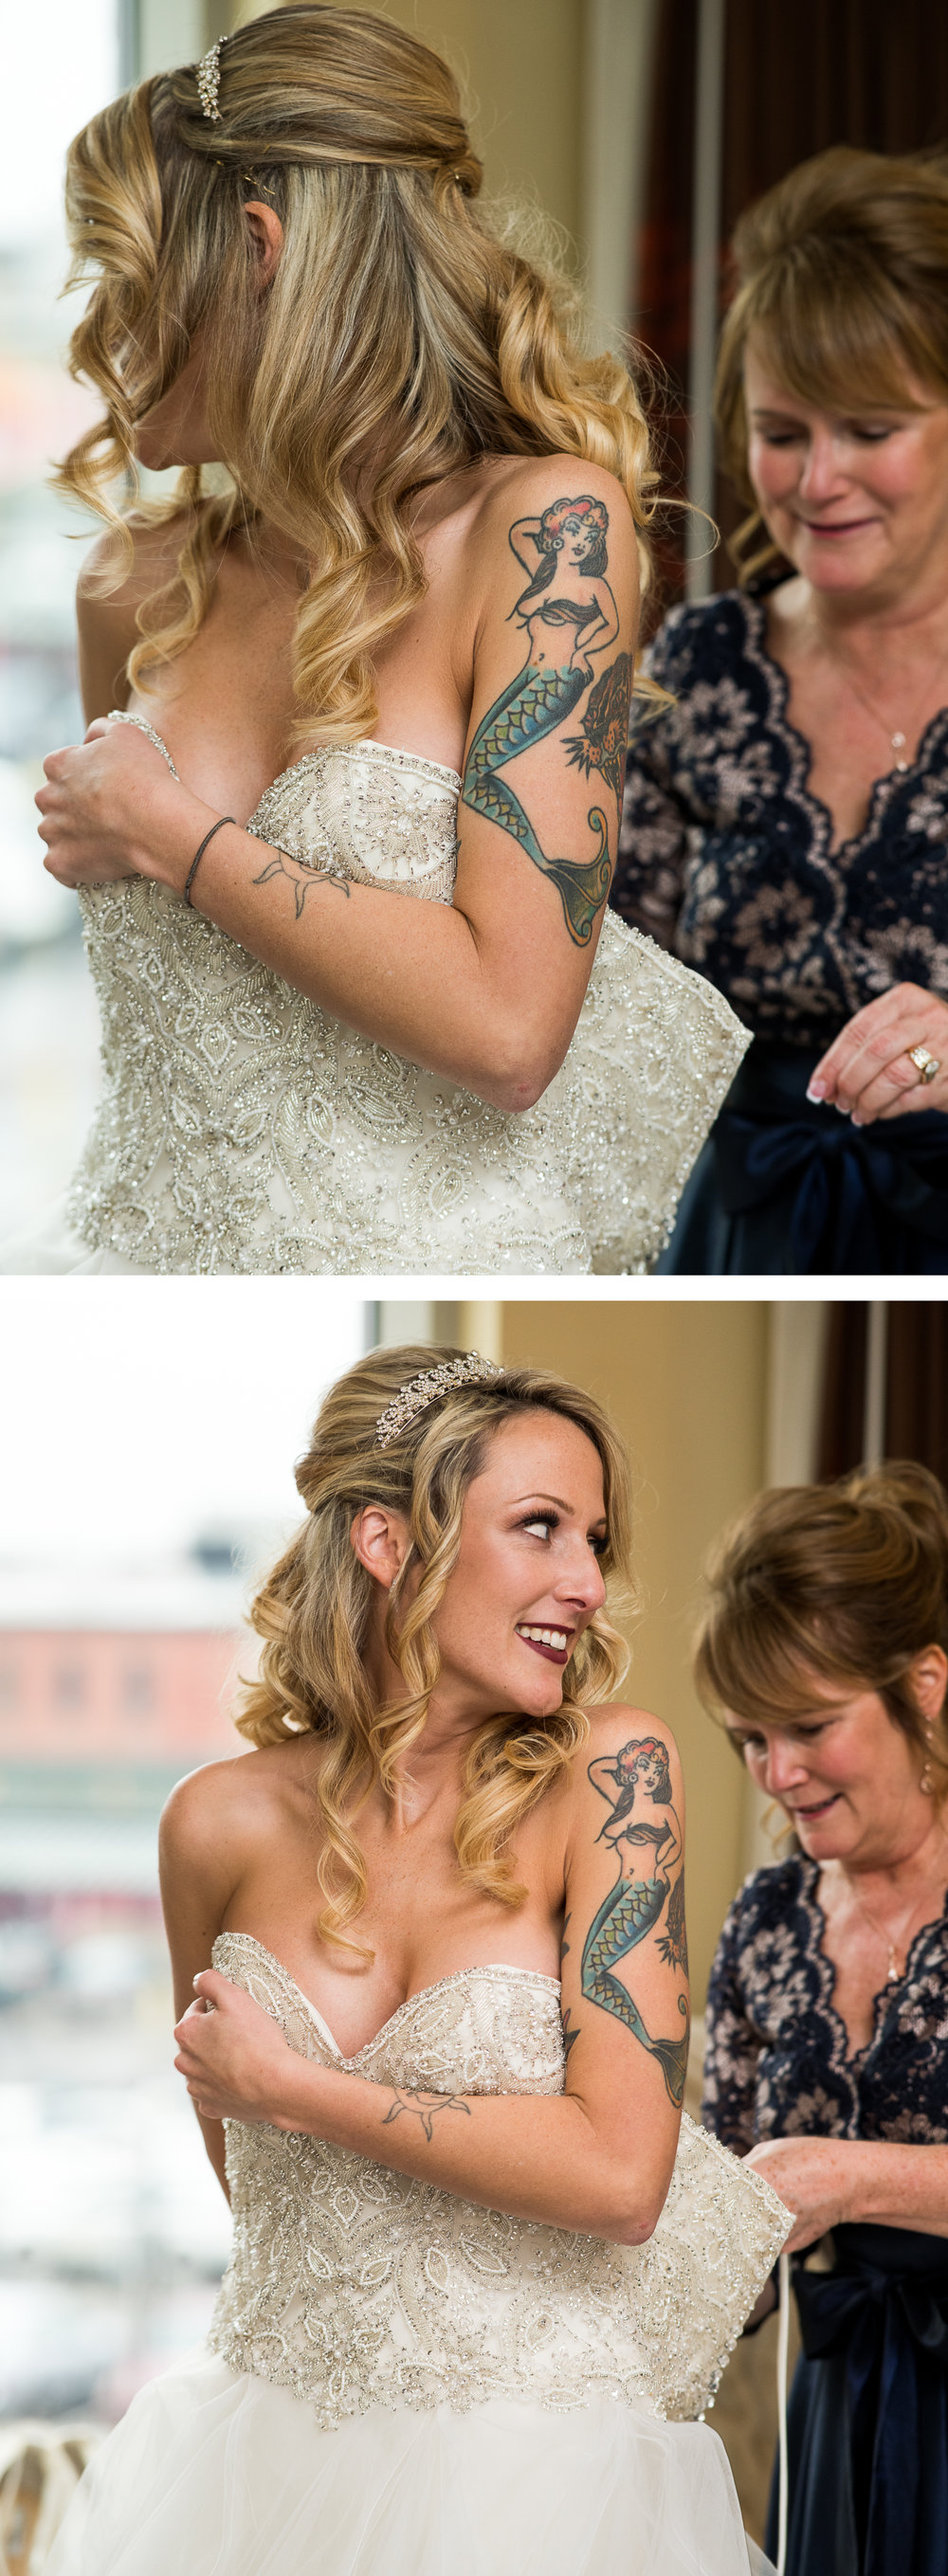 Brett Loves Elle Photography, Columbus Wedding Photographers, Ohio Wedding Photography, Glam Tattooed Bride, Bride Getting Ready with Mom